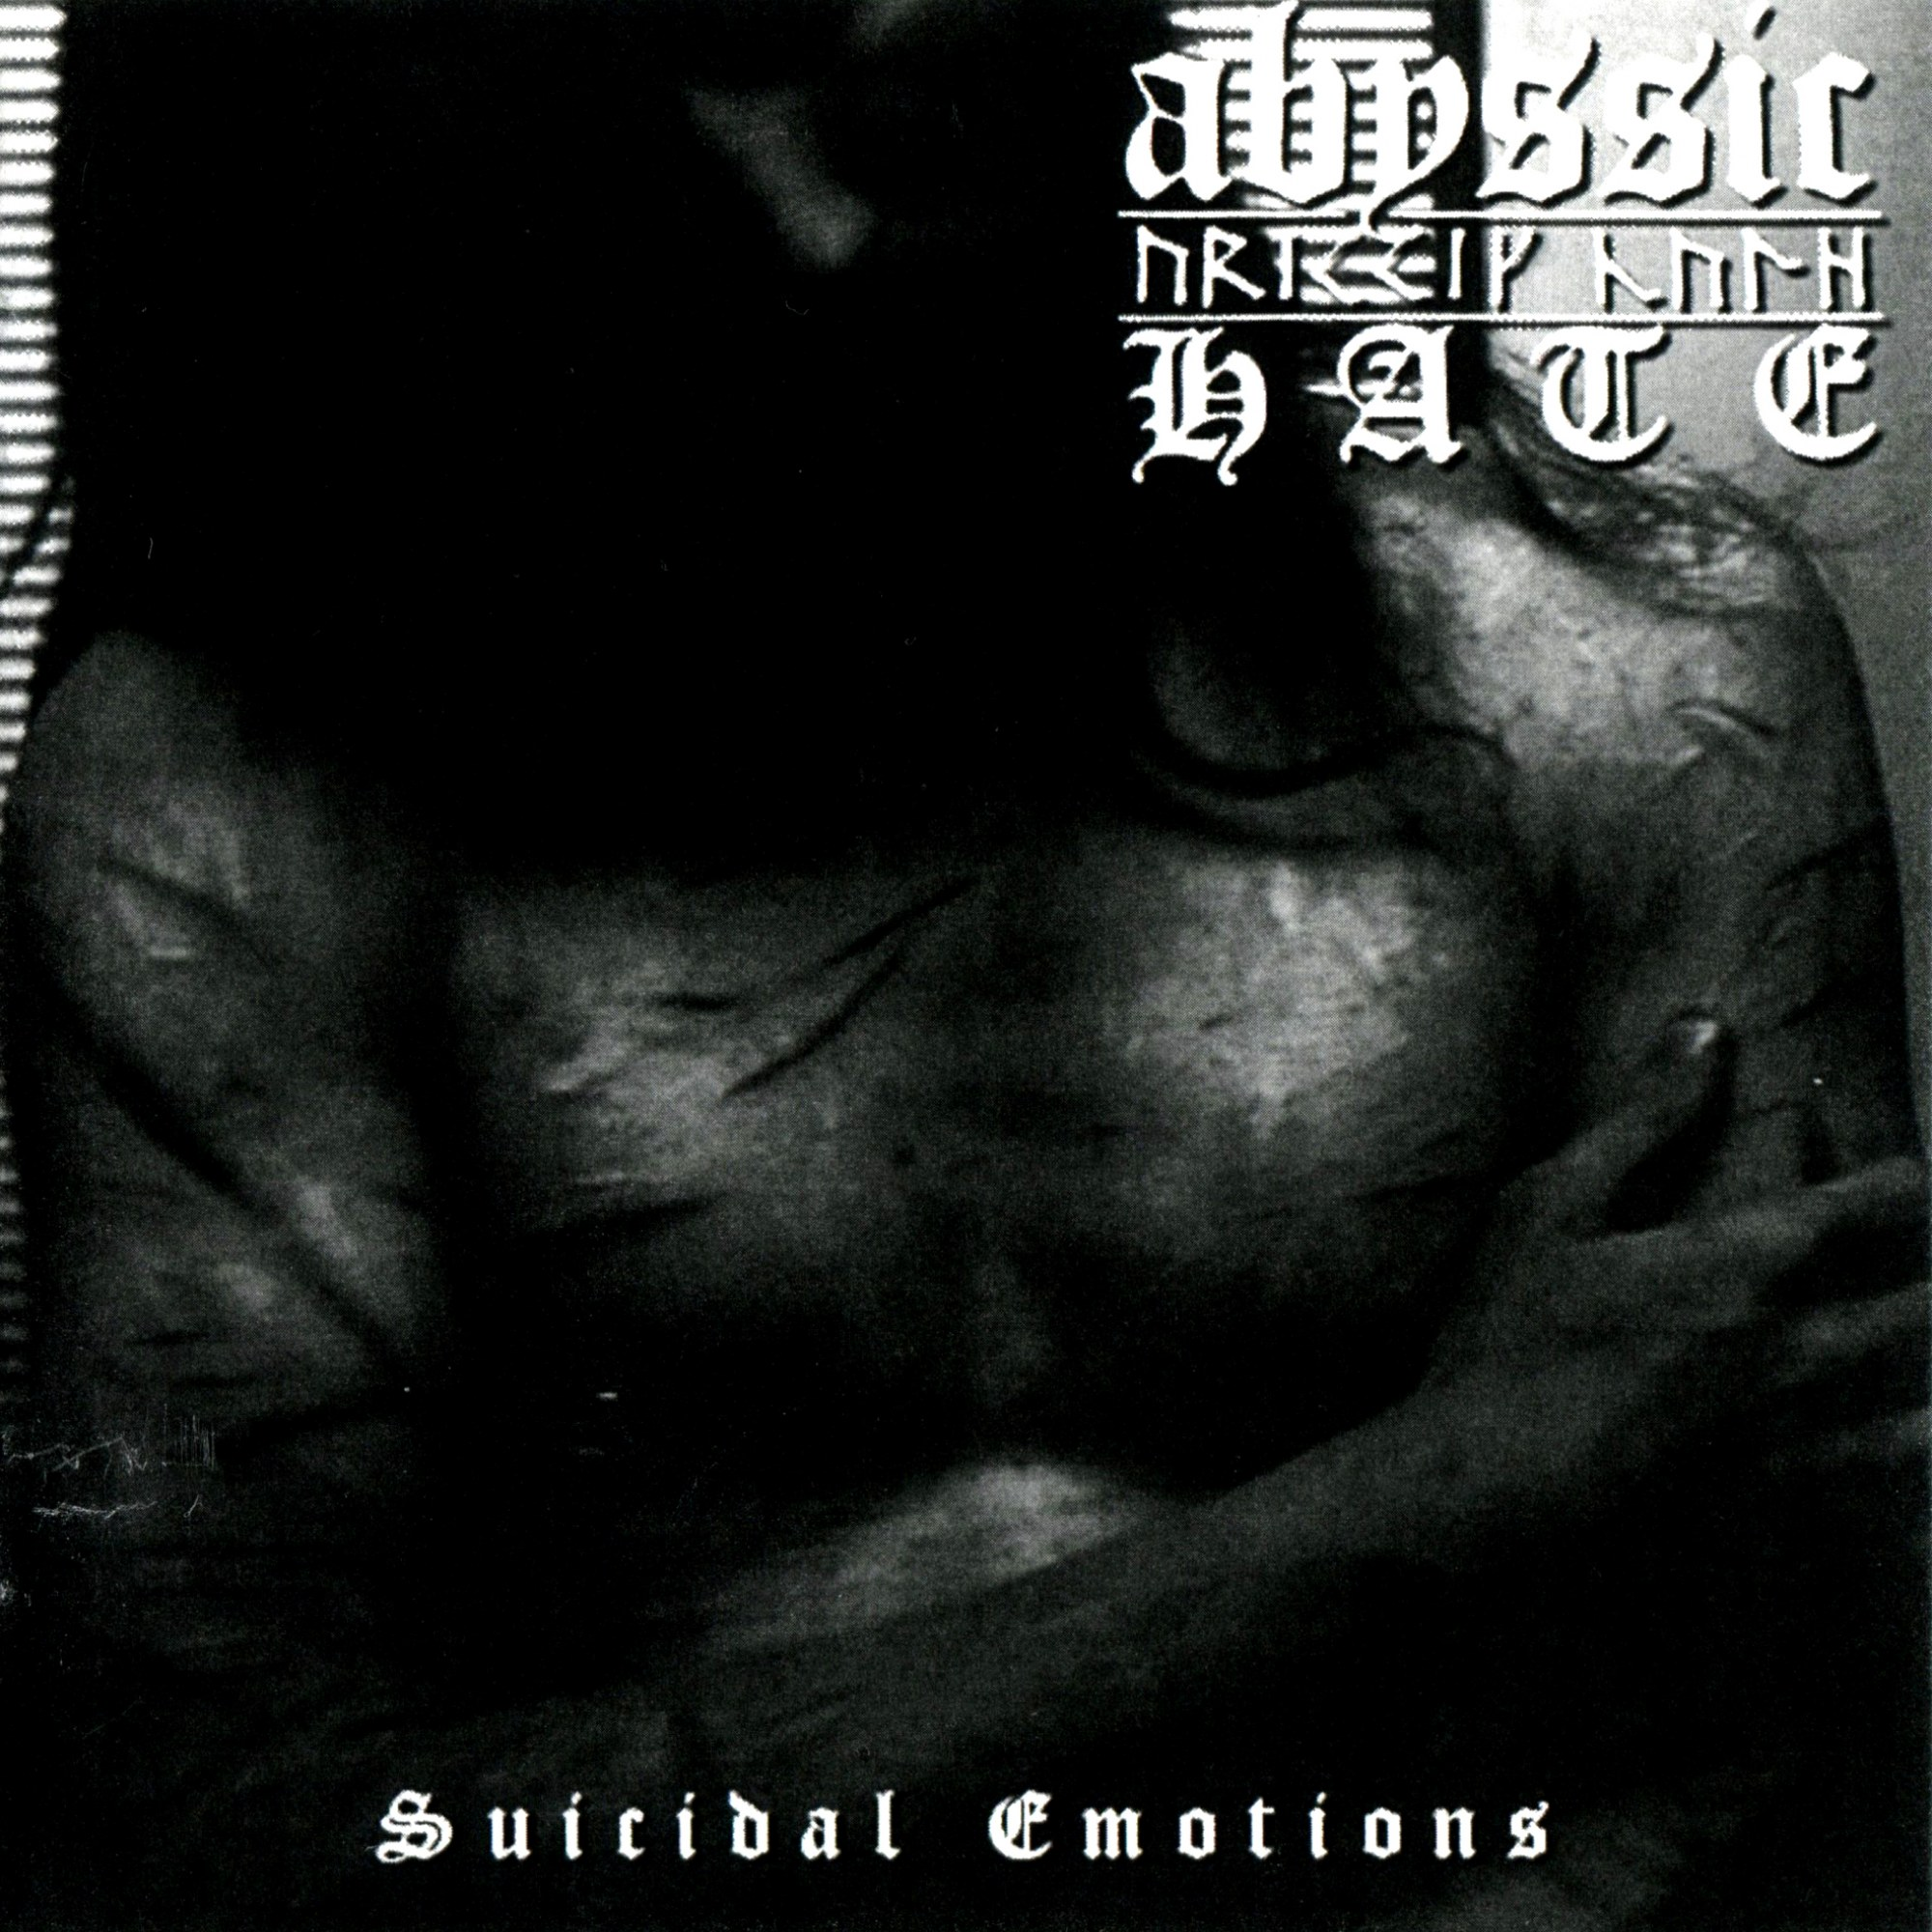 Review for Abyssic Hate - Suicidal Emotions